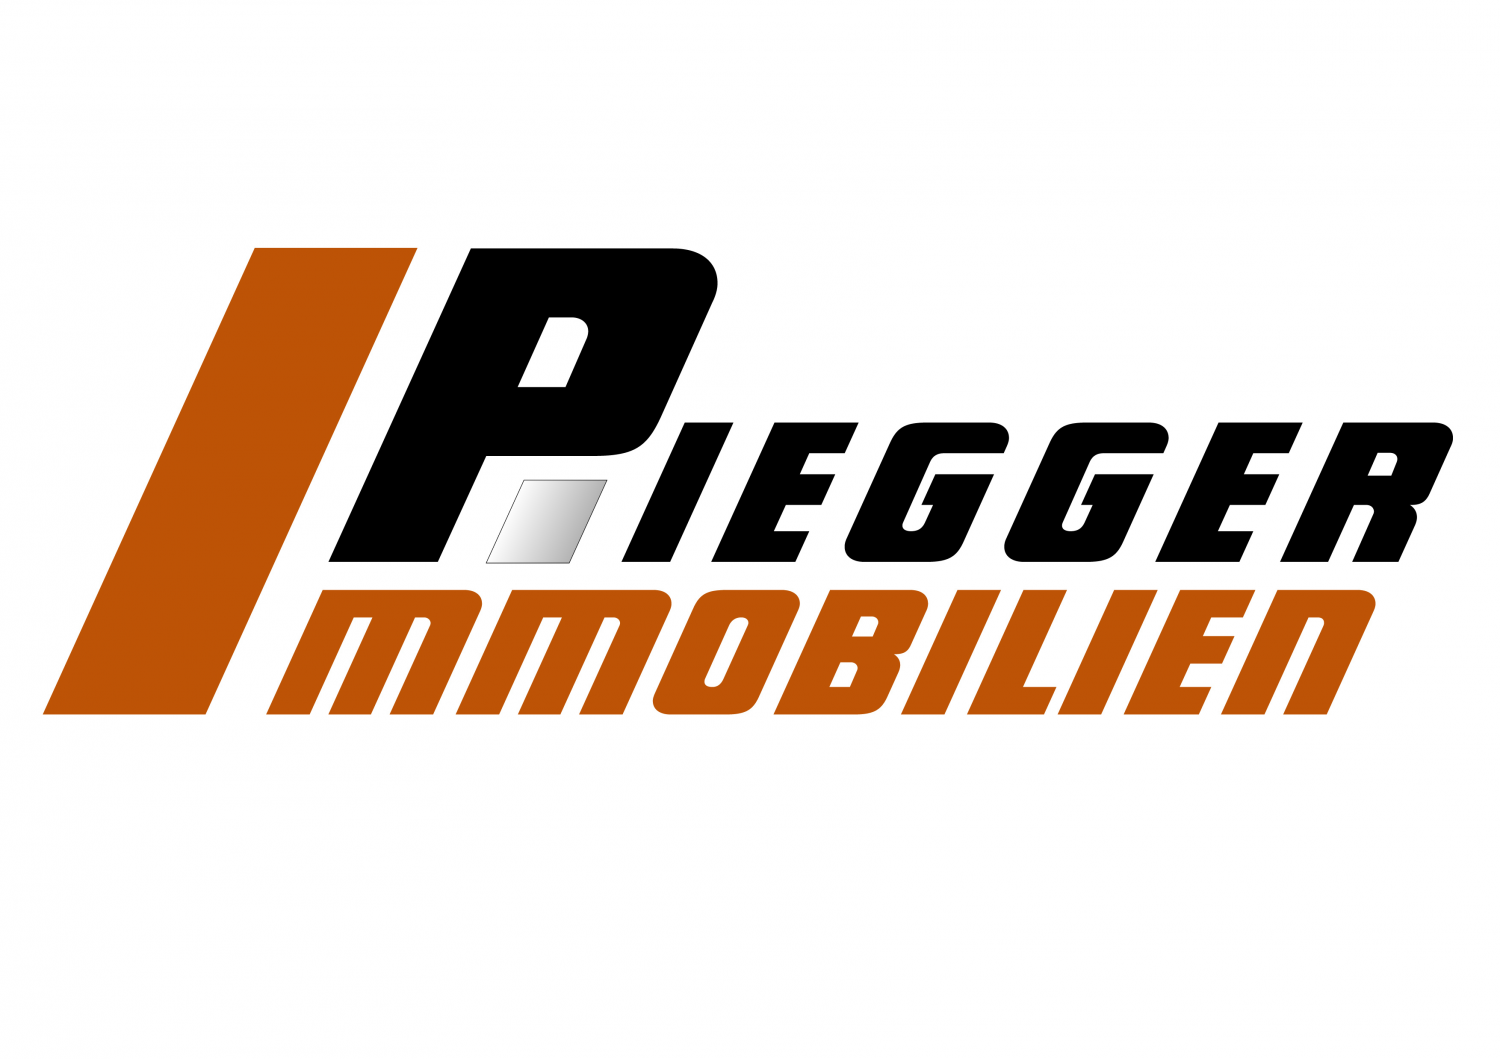 Piegger Immobilien